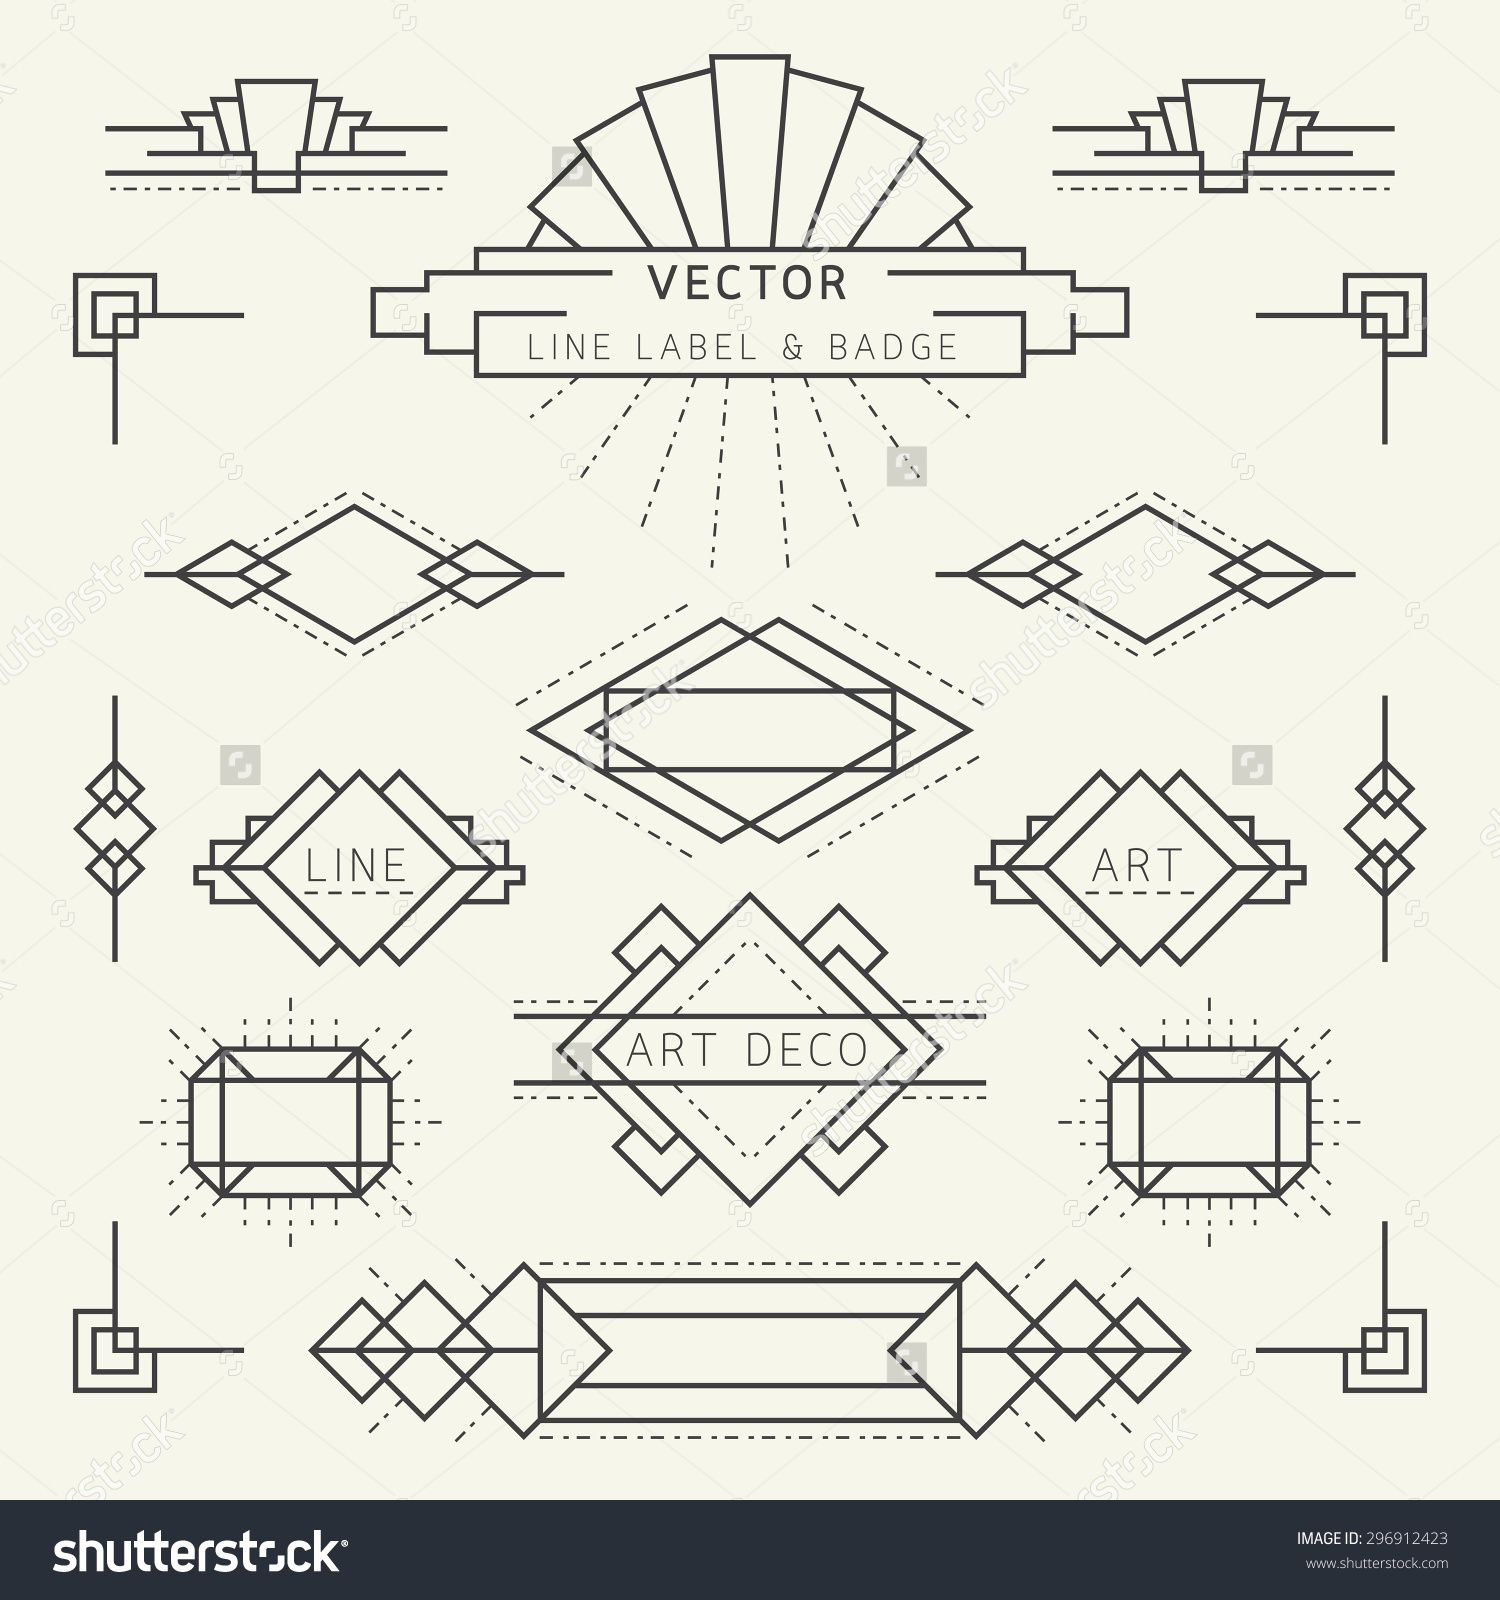 Art Deco Line Design : Stock vector art deco style line and geometric labels